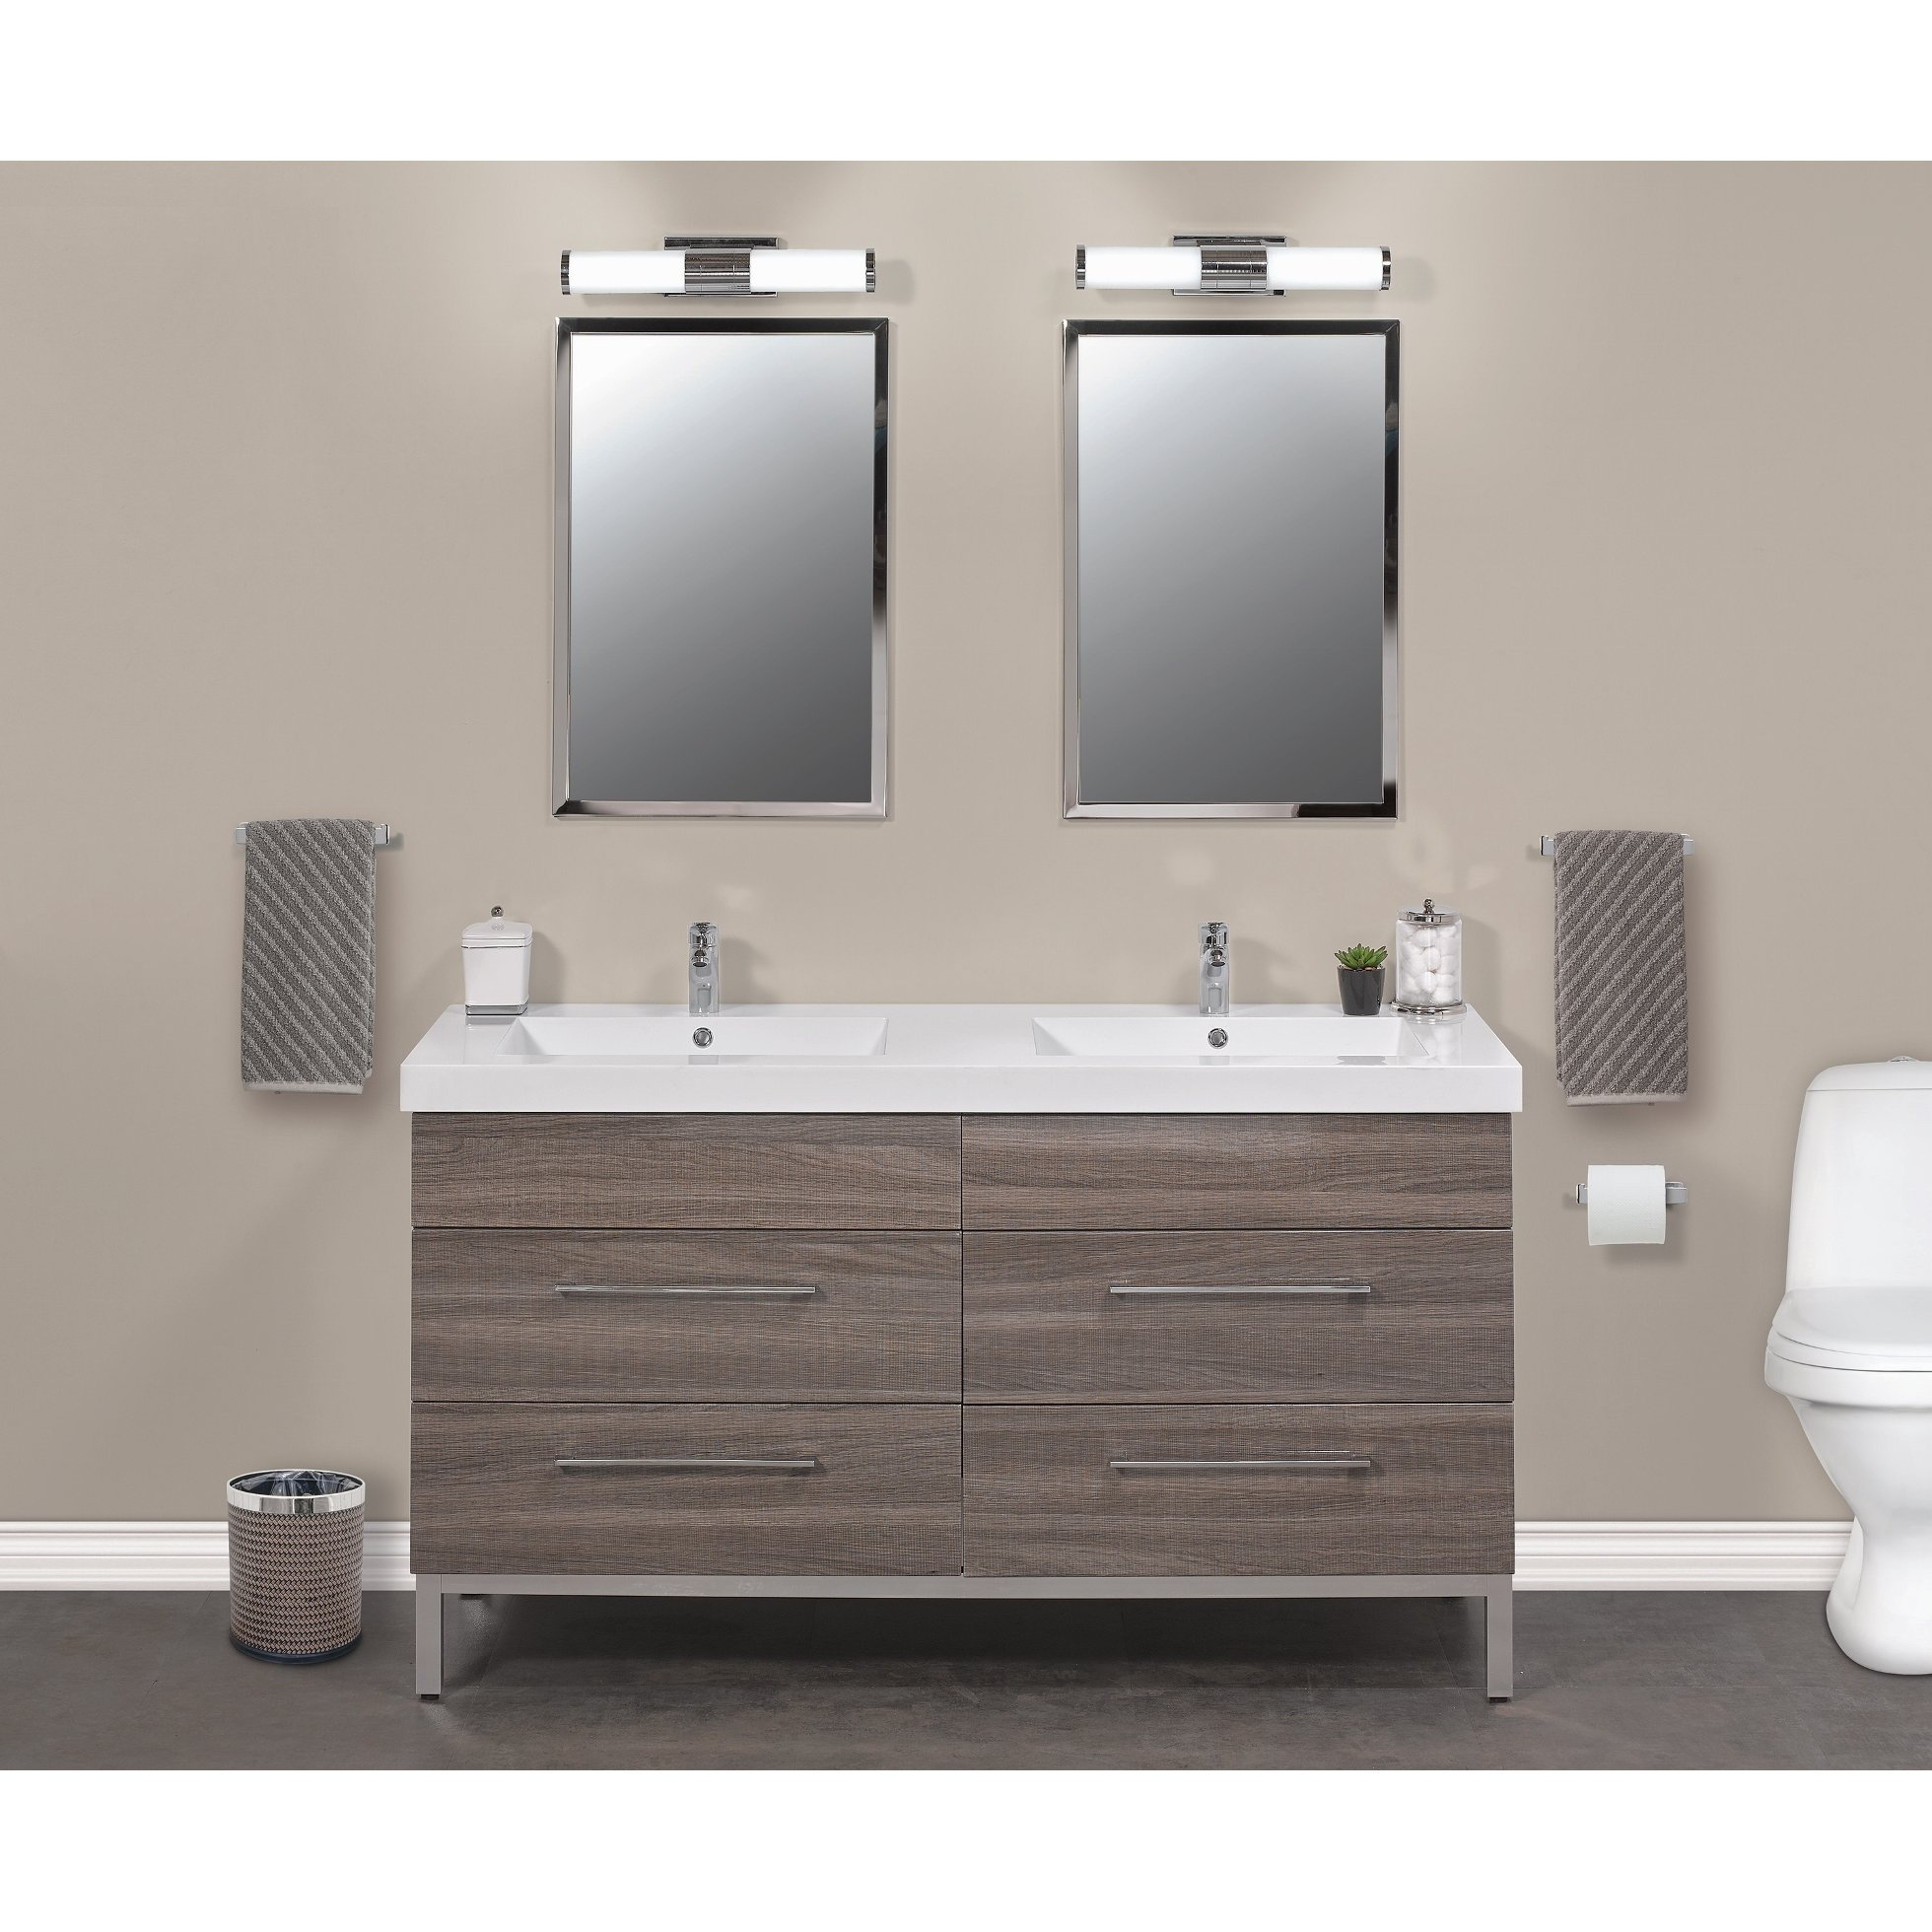 Empire Industries Bathroom Vanities